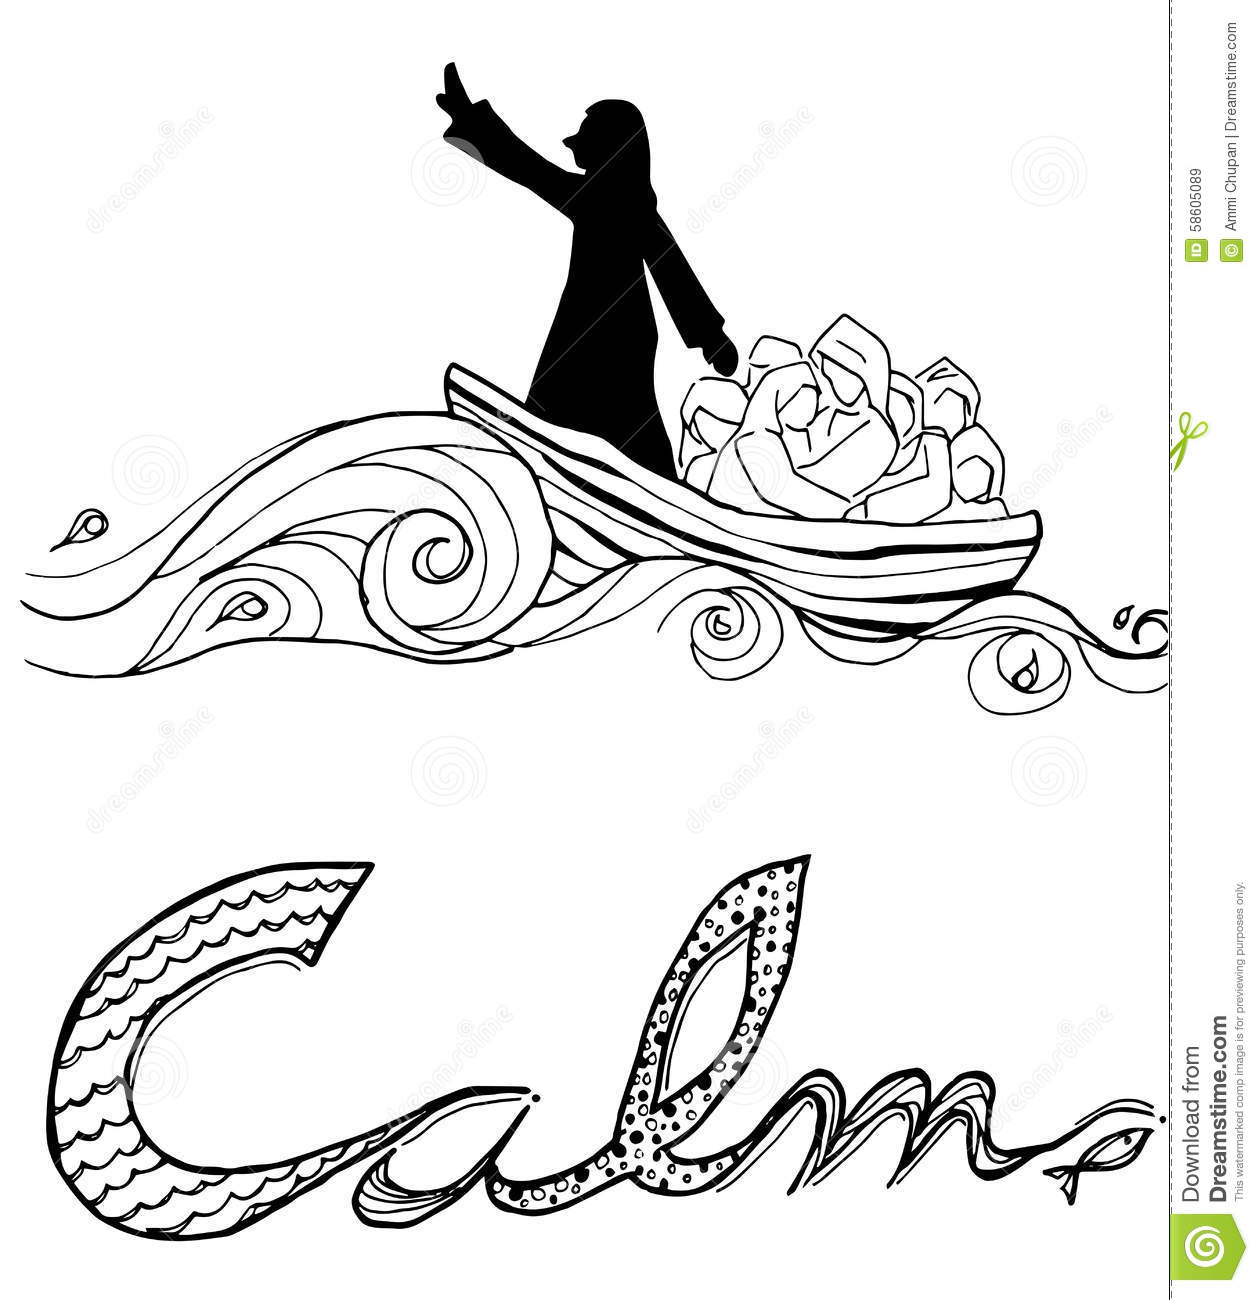 Jesus Calm Storm Line Art Illustration Christian Art Stock